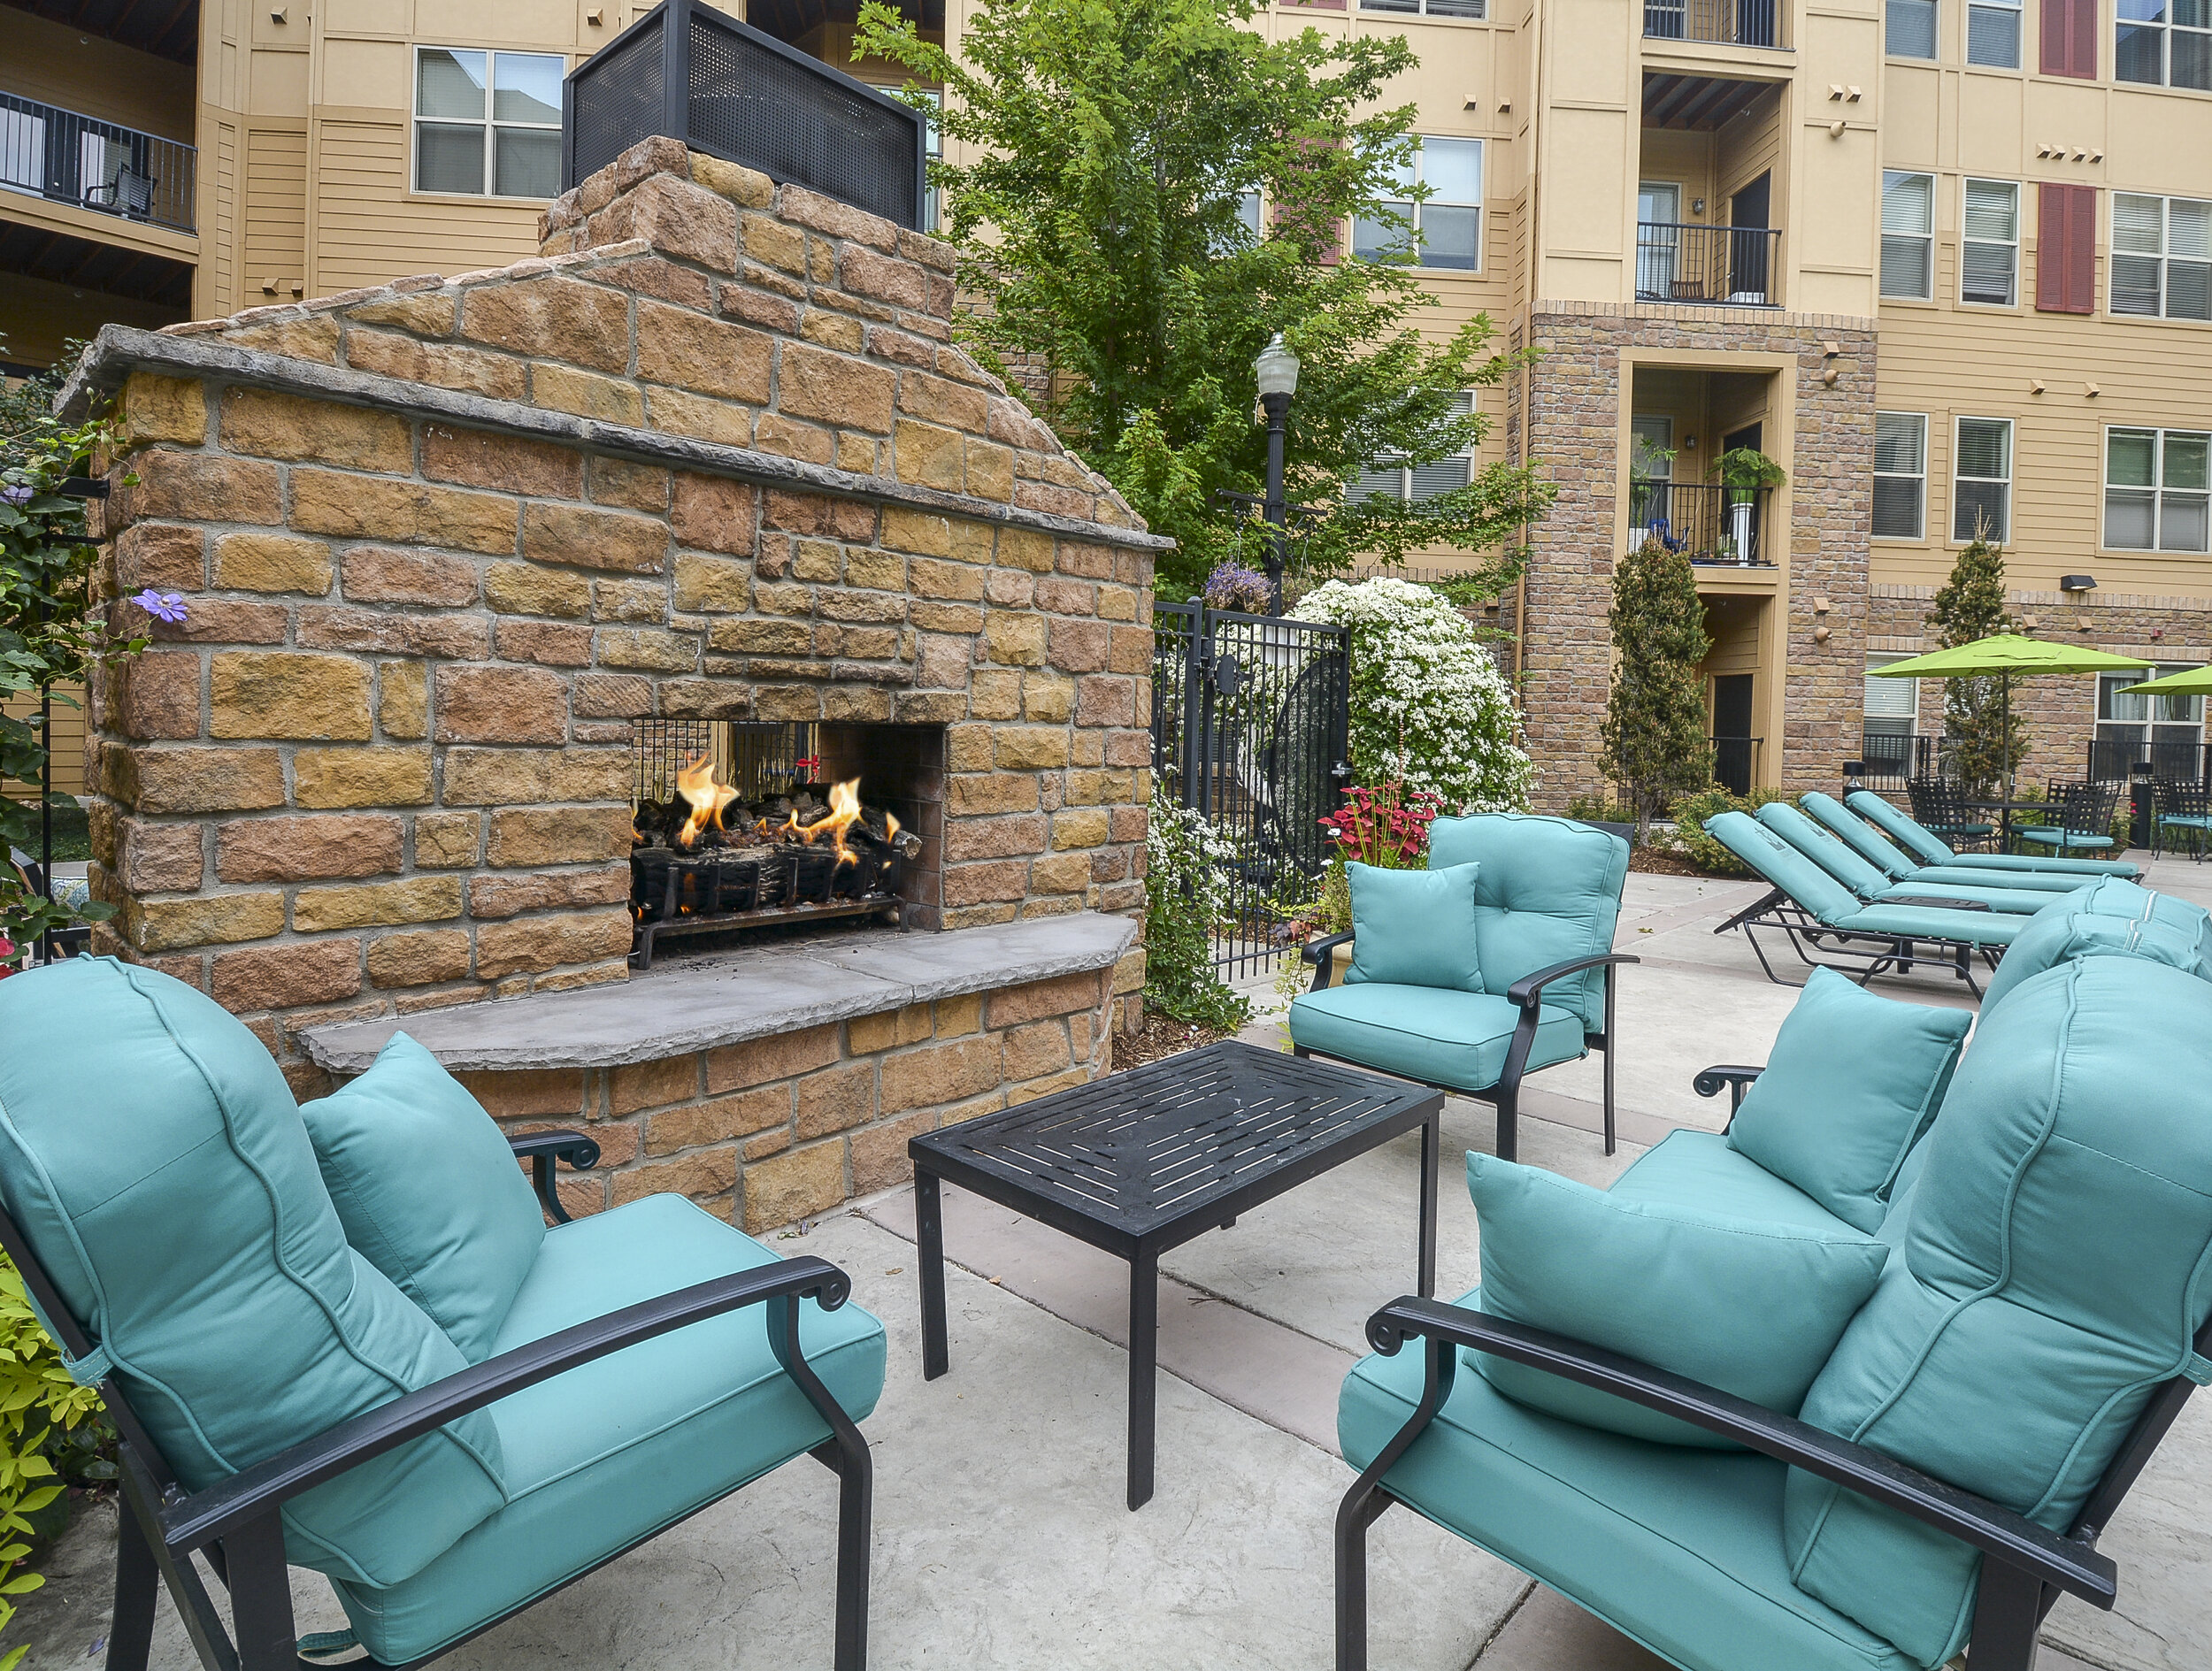 13 Outdoor Lounge Area with Fireplace.jpg